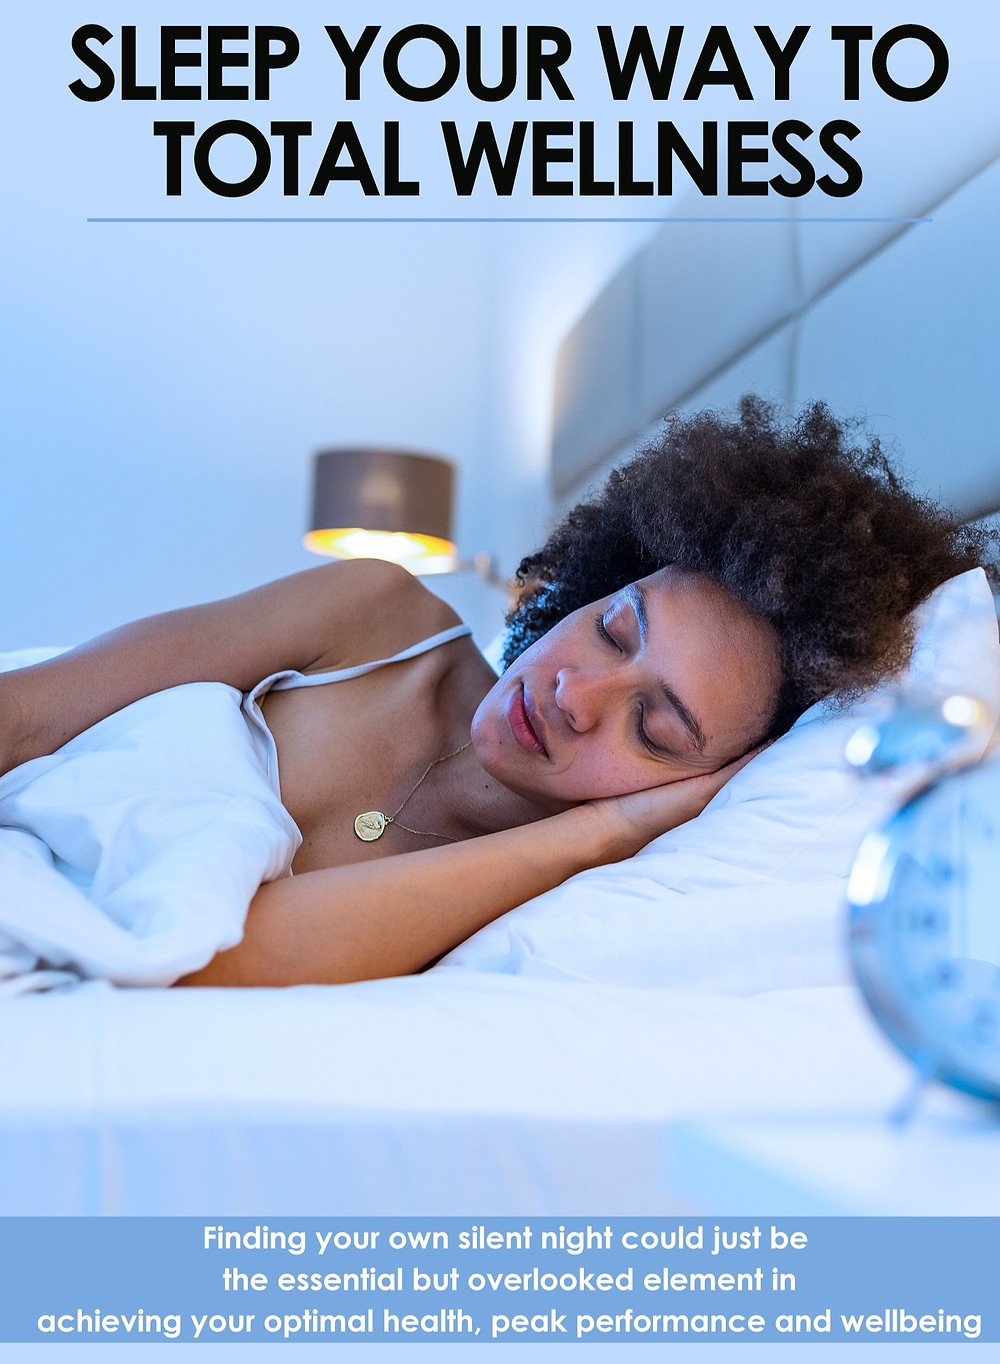 To insure your wellbeing, sleep and recovery are vital. Managing your sleep will partially depend on your weight, nutrition and exercise habits